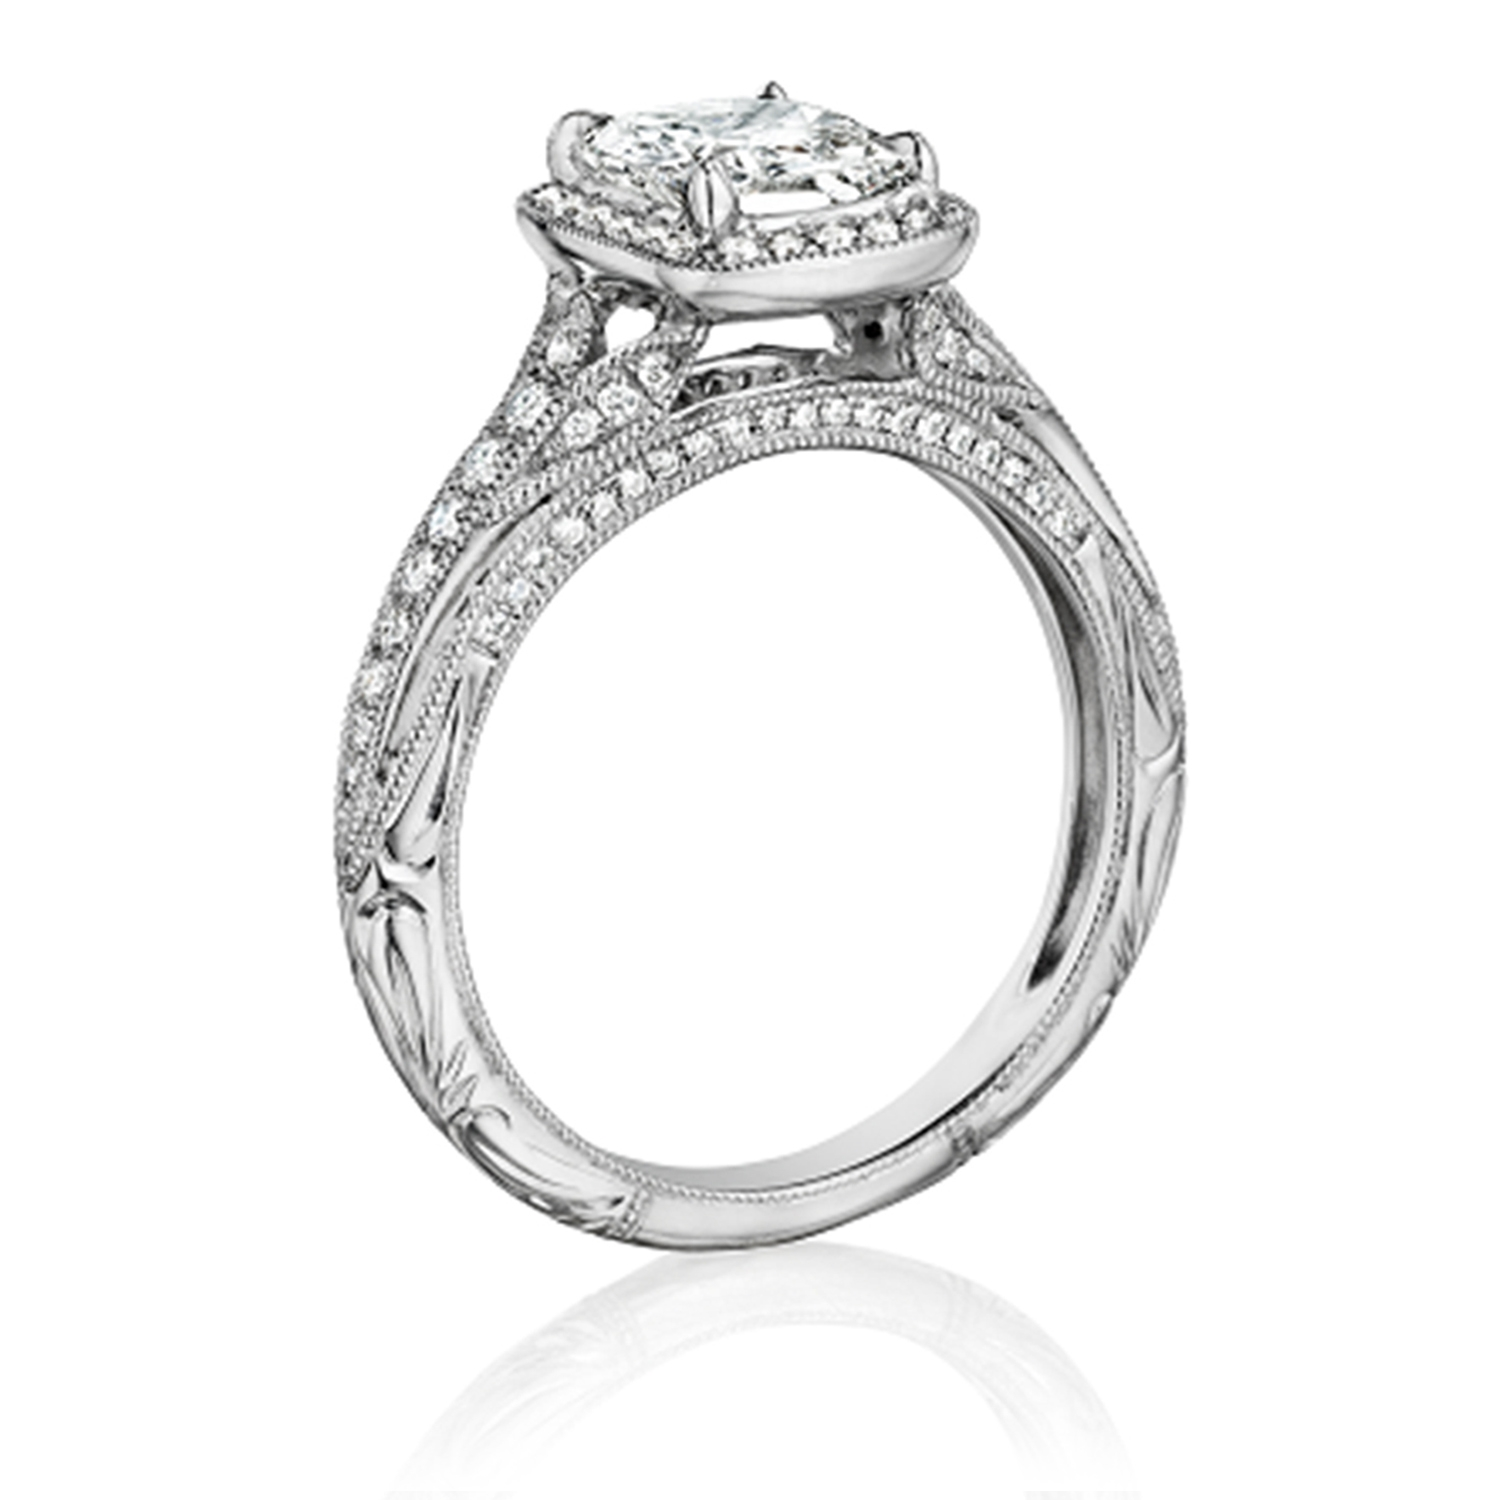 Henri Daussi ANH Cushion Halo Antique Diamond Engagement Ring Alternative View 1